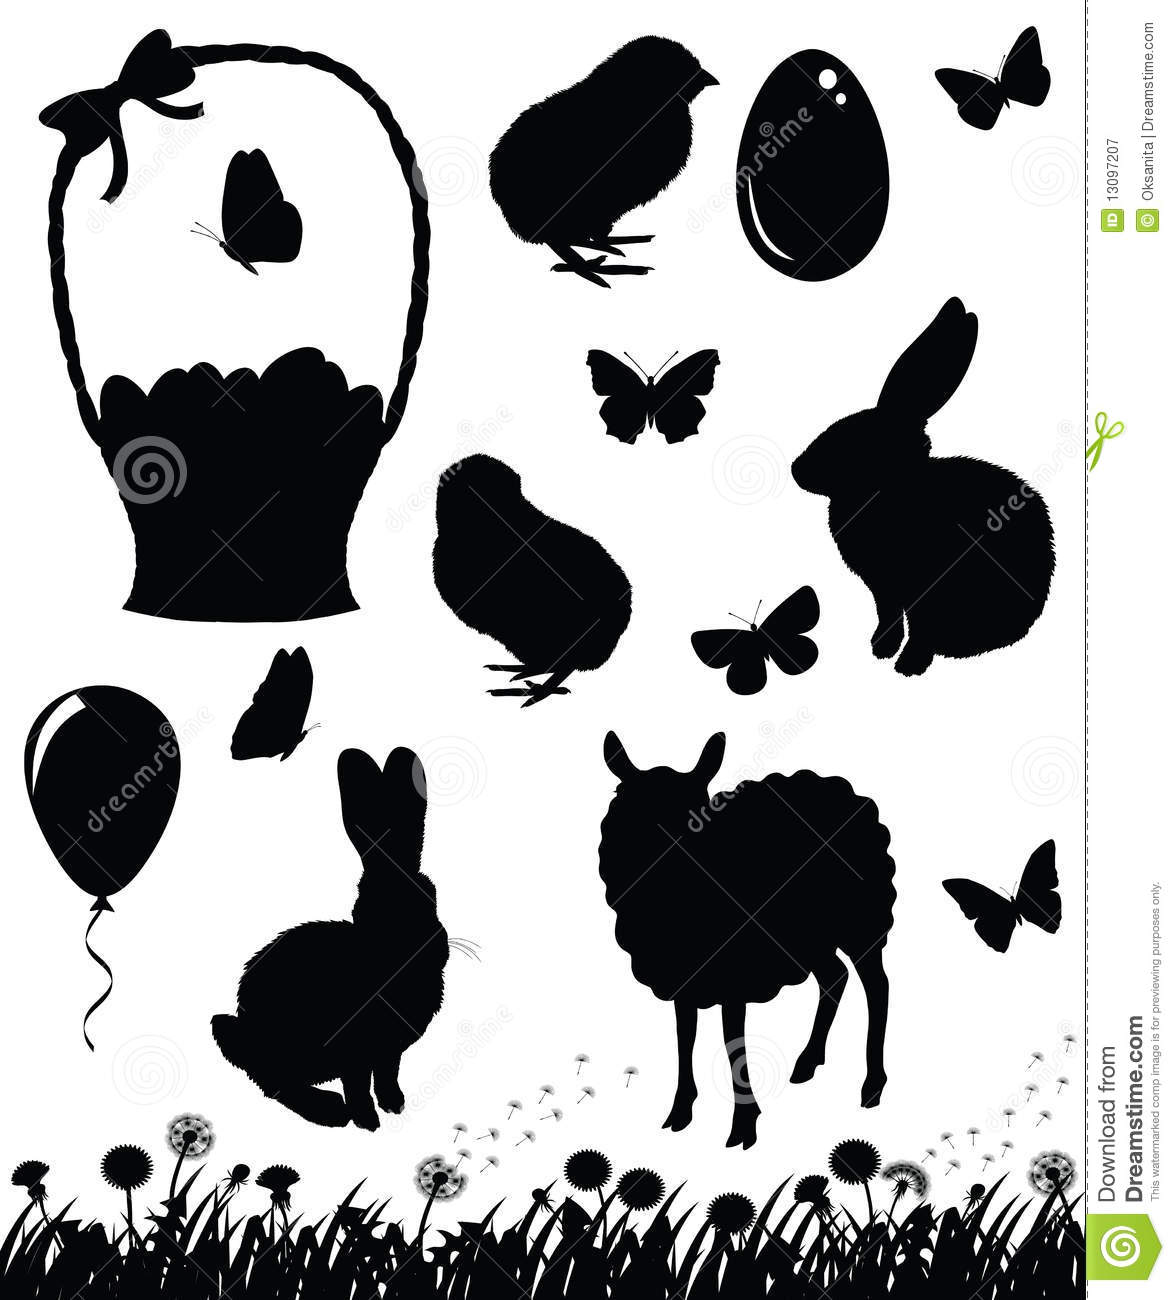 printable easter silhouette craft easter silhouettes stock illustration illustration of 5288